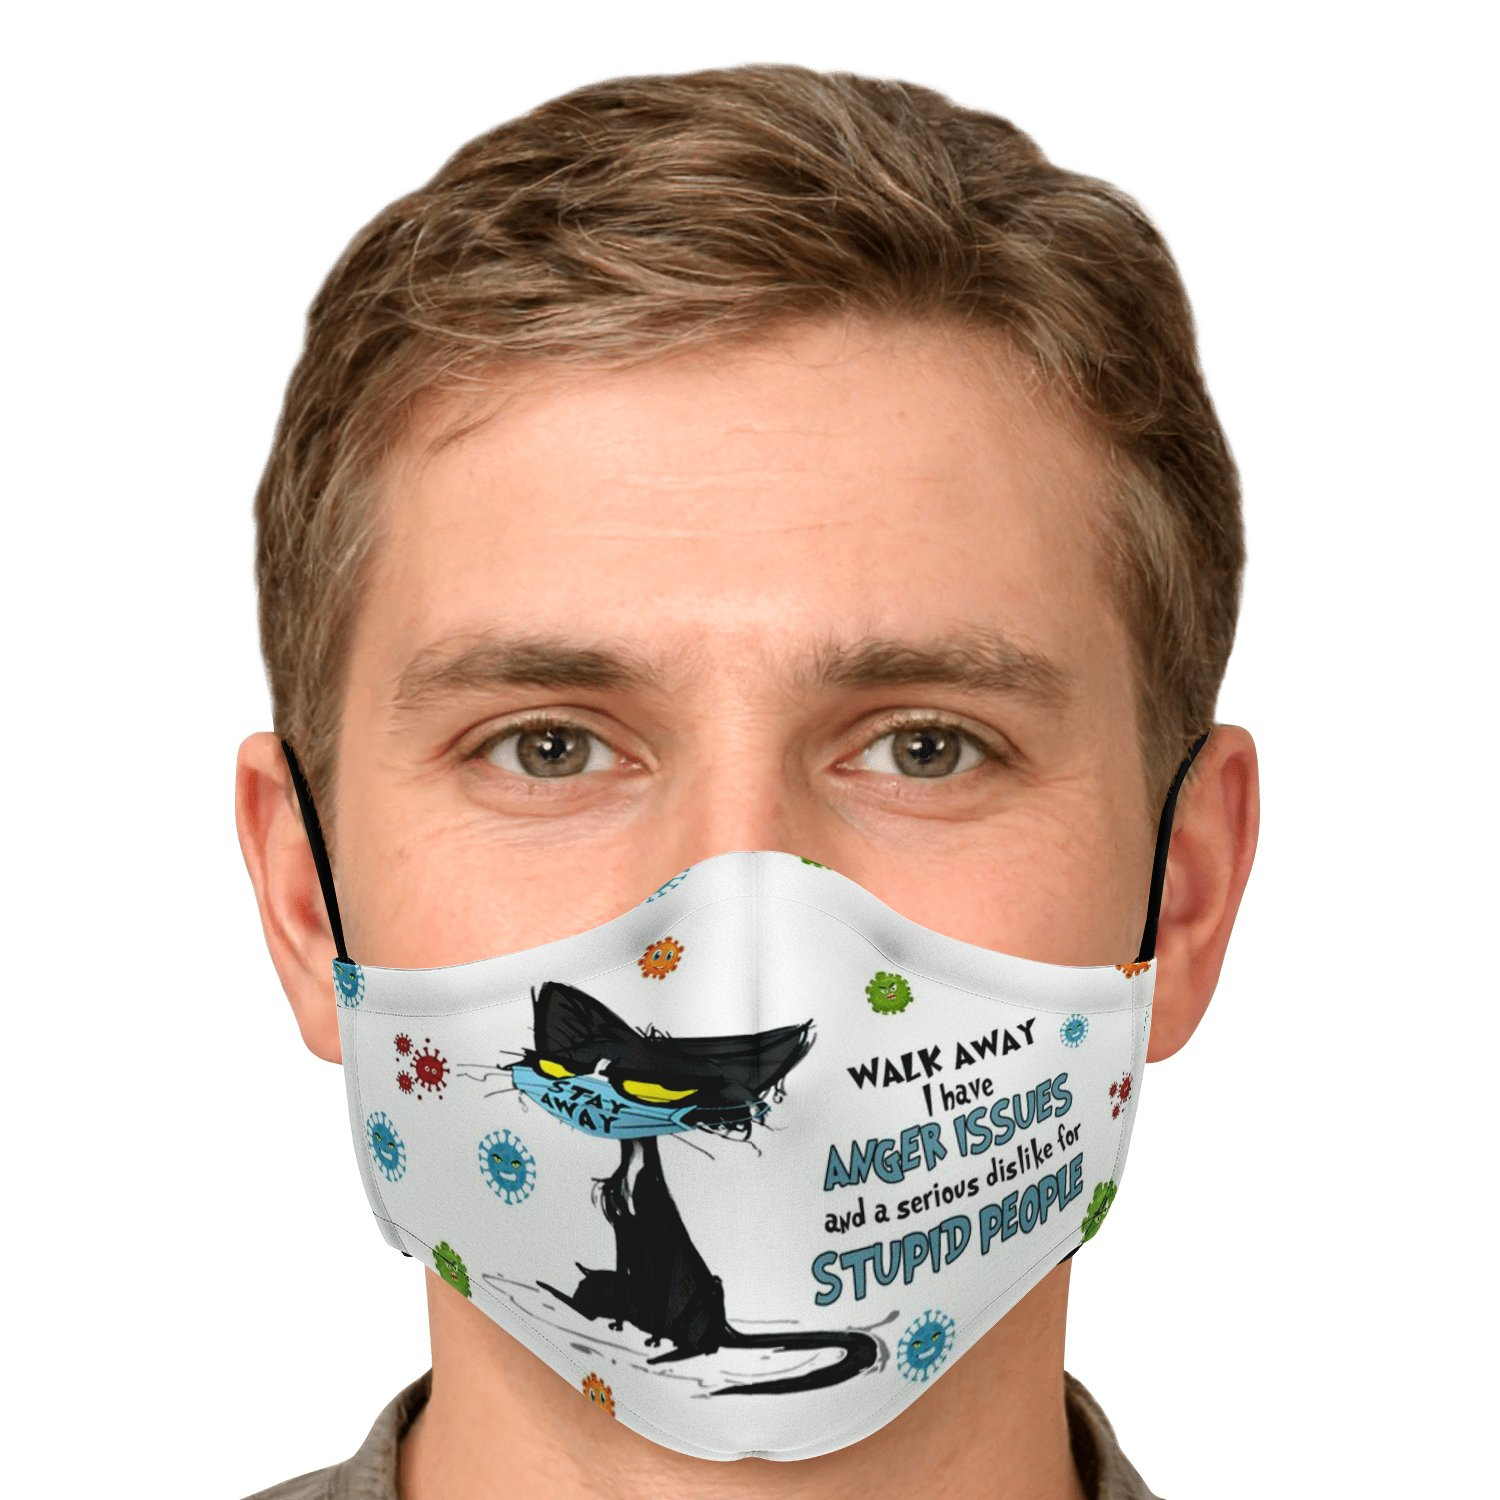 Walk Away Stupid People Black Cat Face Mask 5